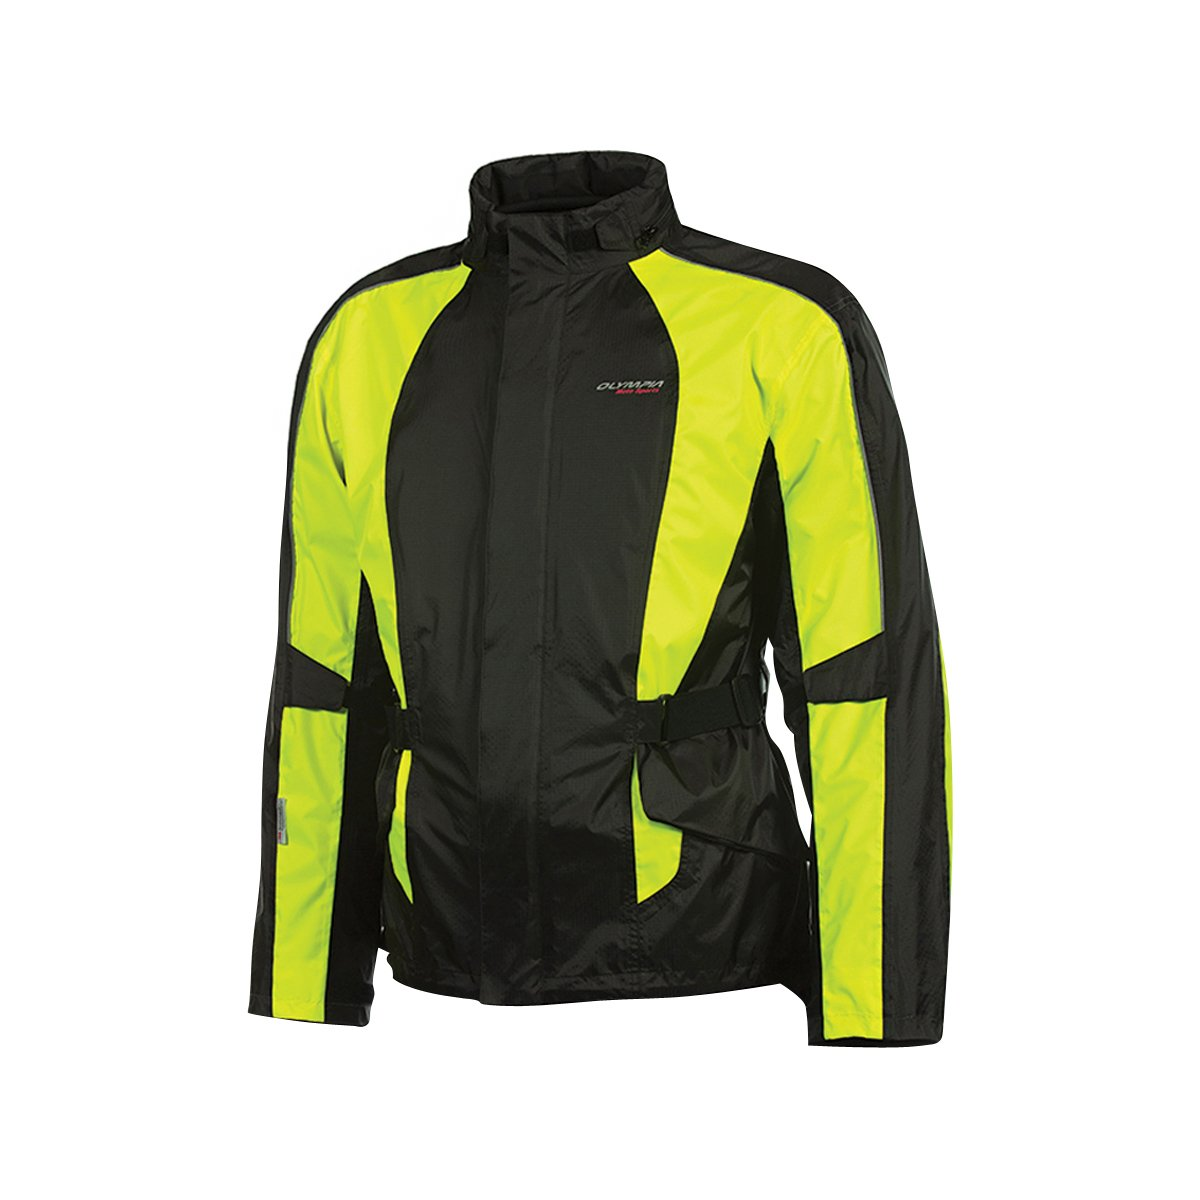 Olympia New Horizon Rain Mens Waterproof Exteriors and Rain Gear On-Road Racing Motorcycle Jacket - Black/Neon Yellow/X-Small/Small